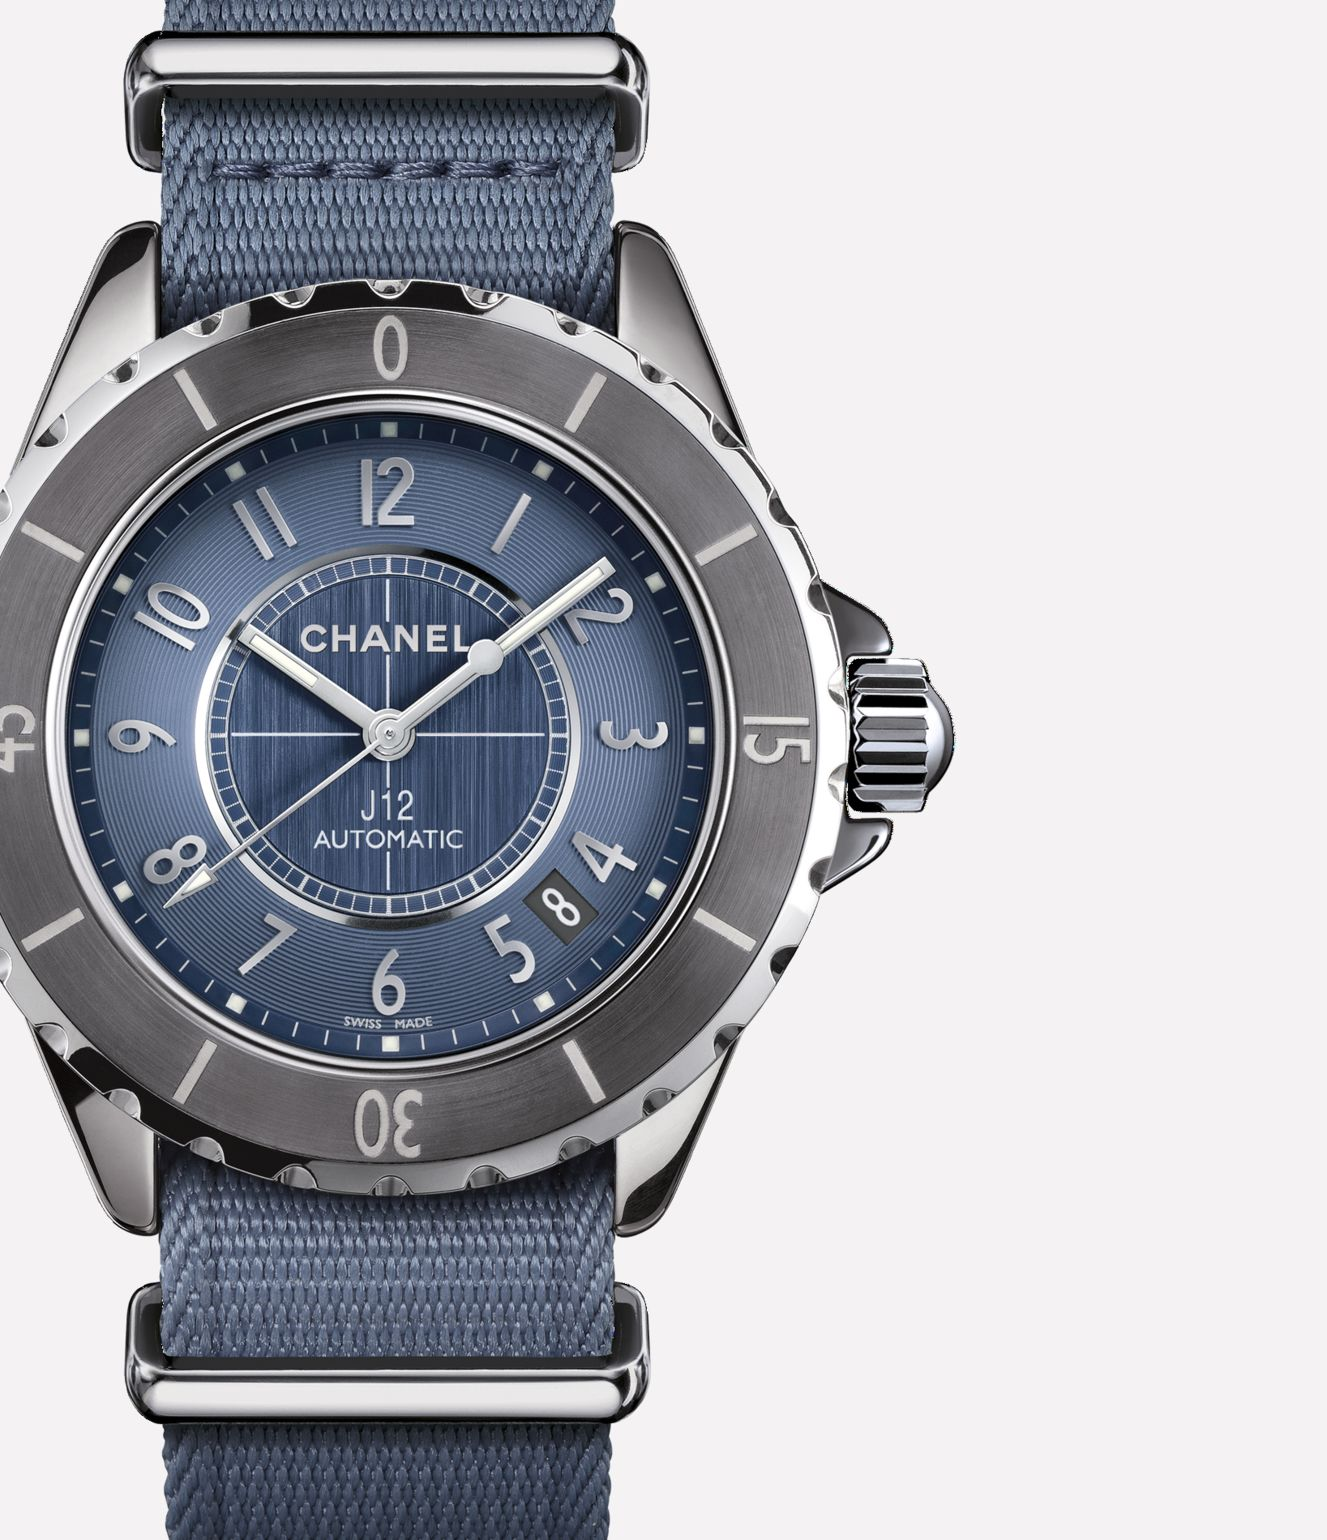 J12-G10 Titanium ceramic and steel, blue dial, blue alligator and blue nylon straps